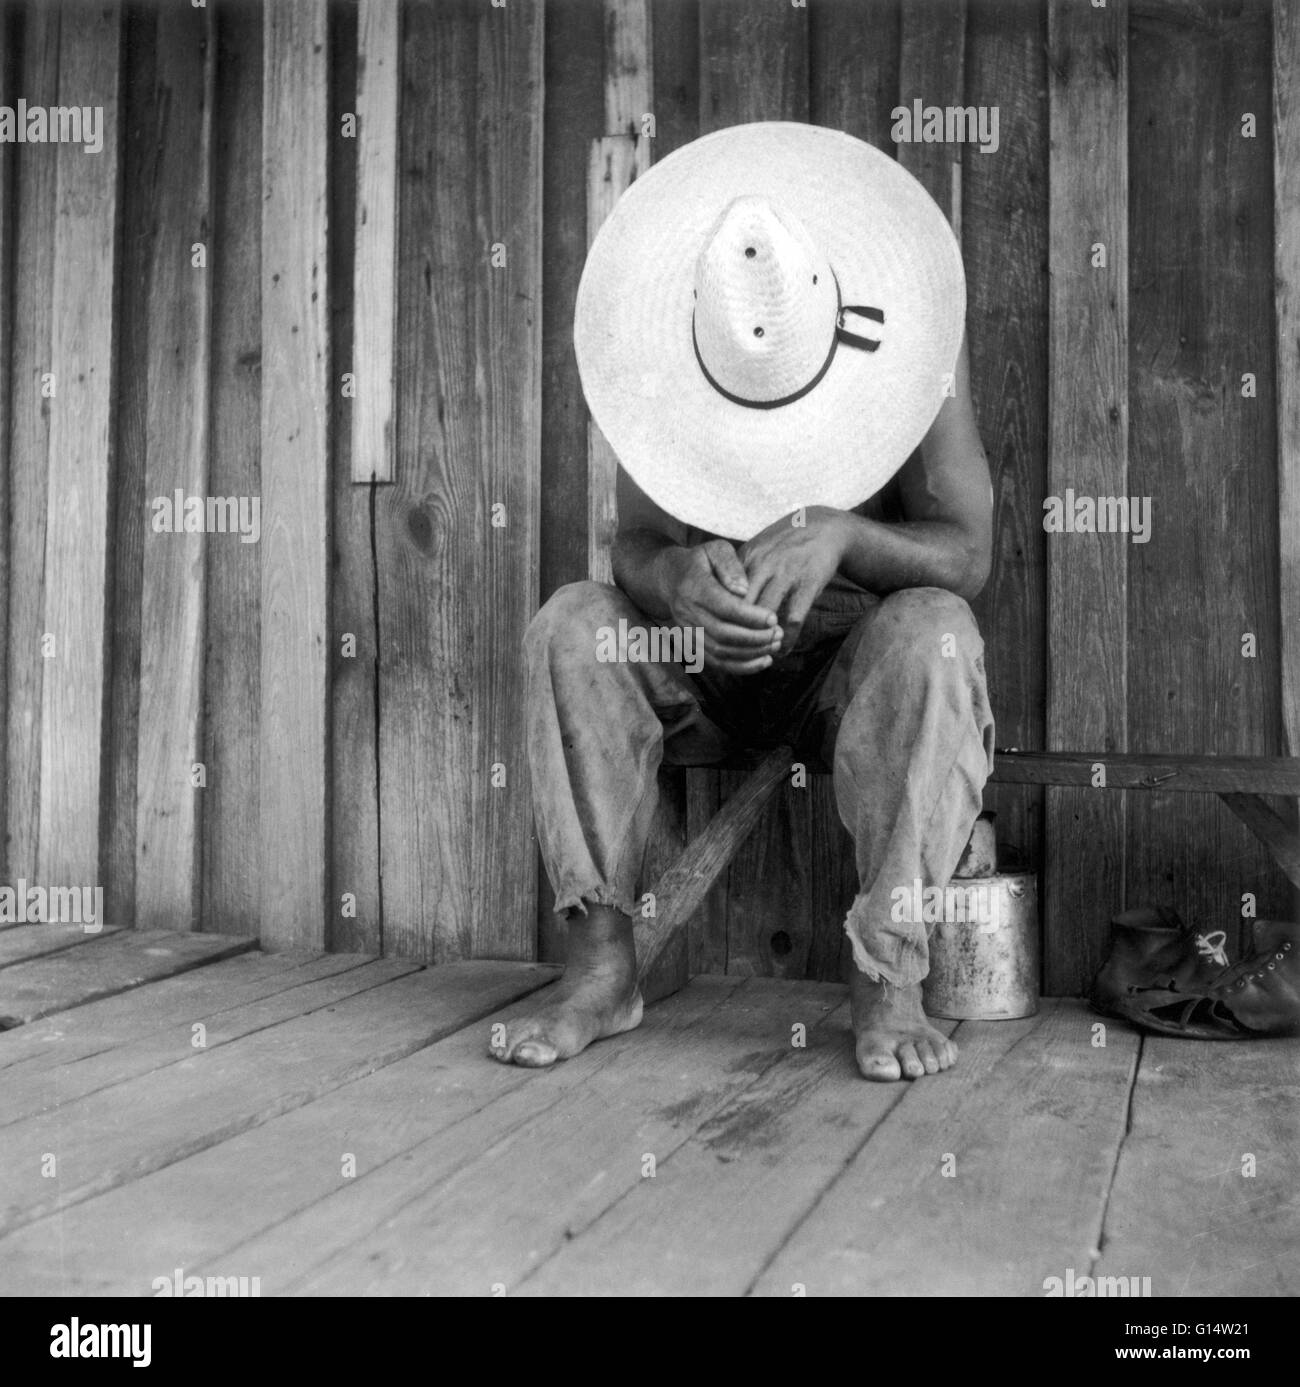 A turpentine worker in Dupont, Georgia, photographed by Dorothea Lange in July 1937, for the Farm Security Administration - Stock Image